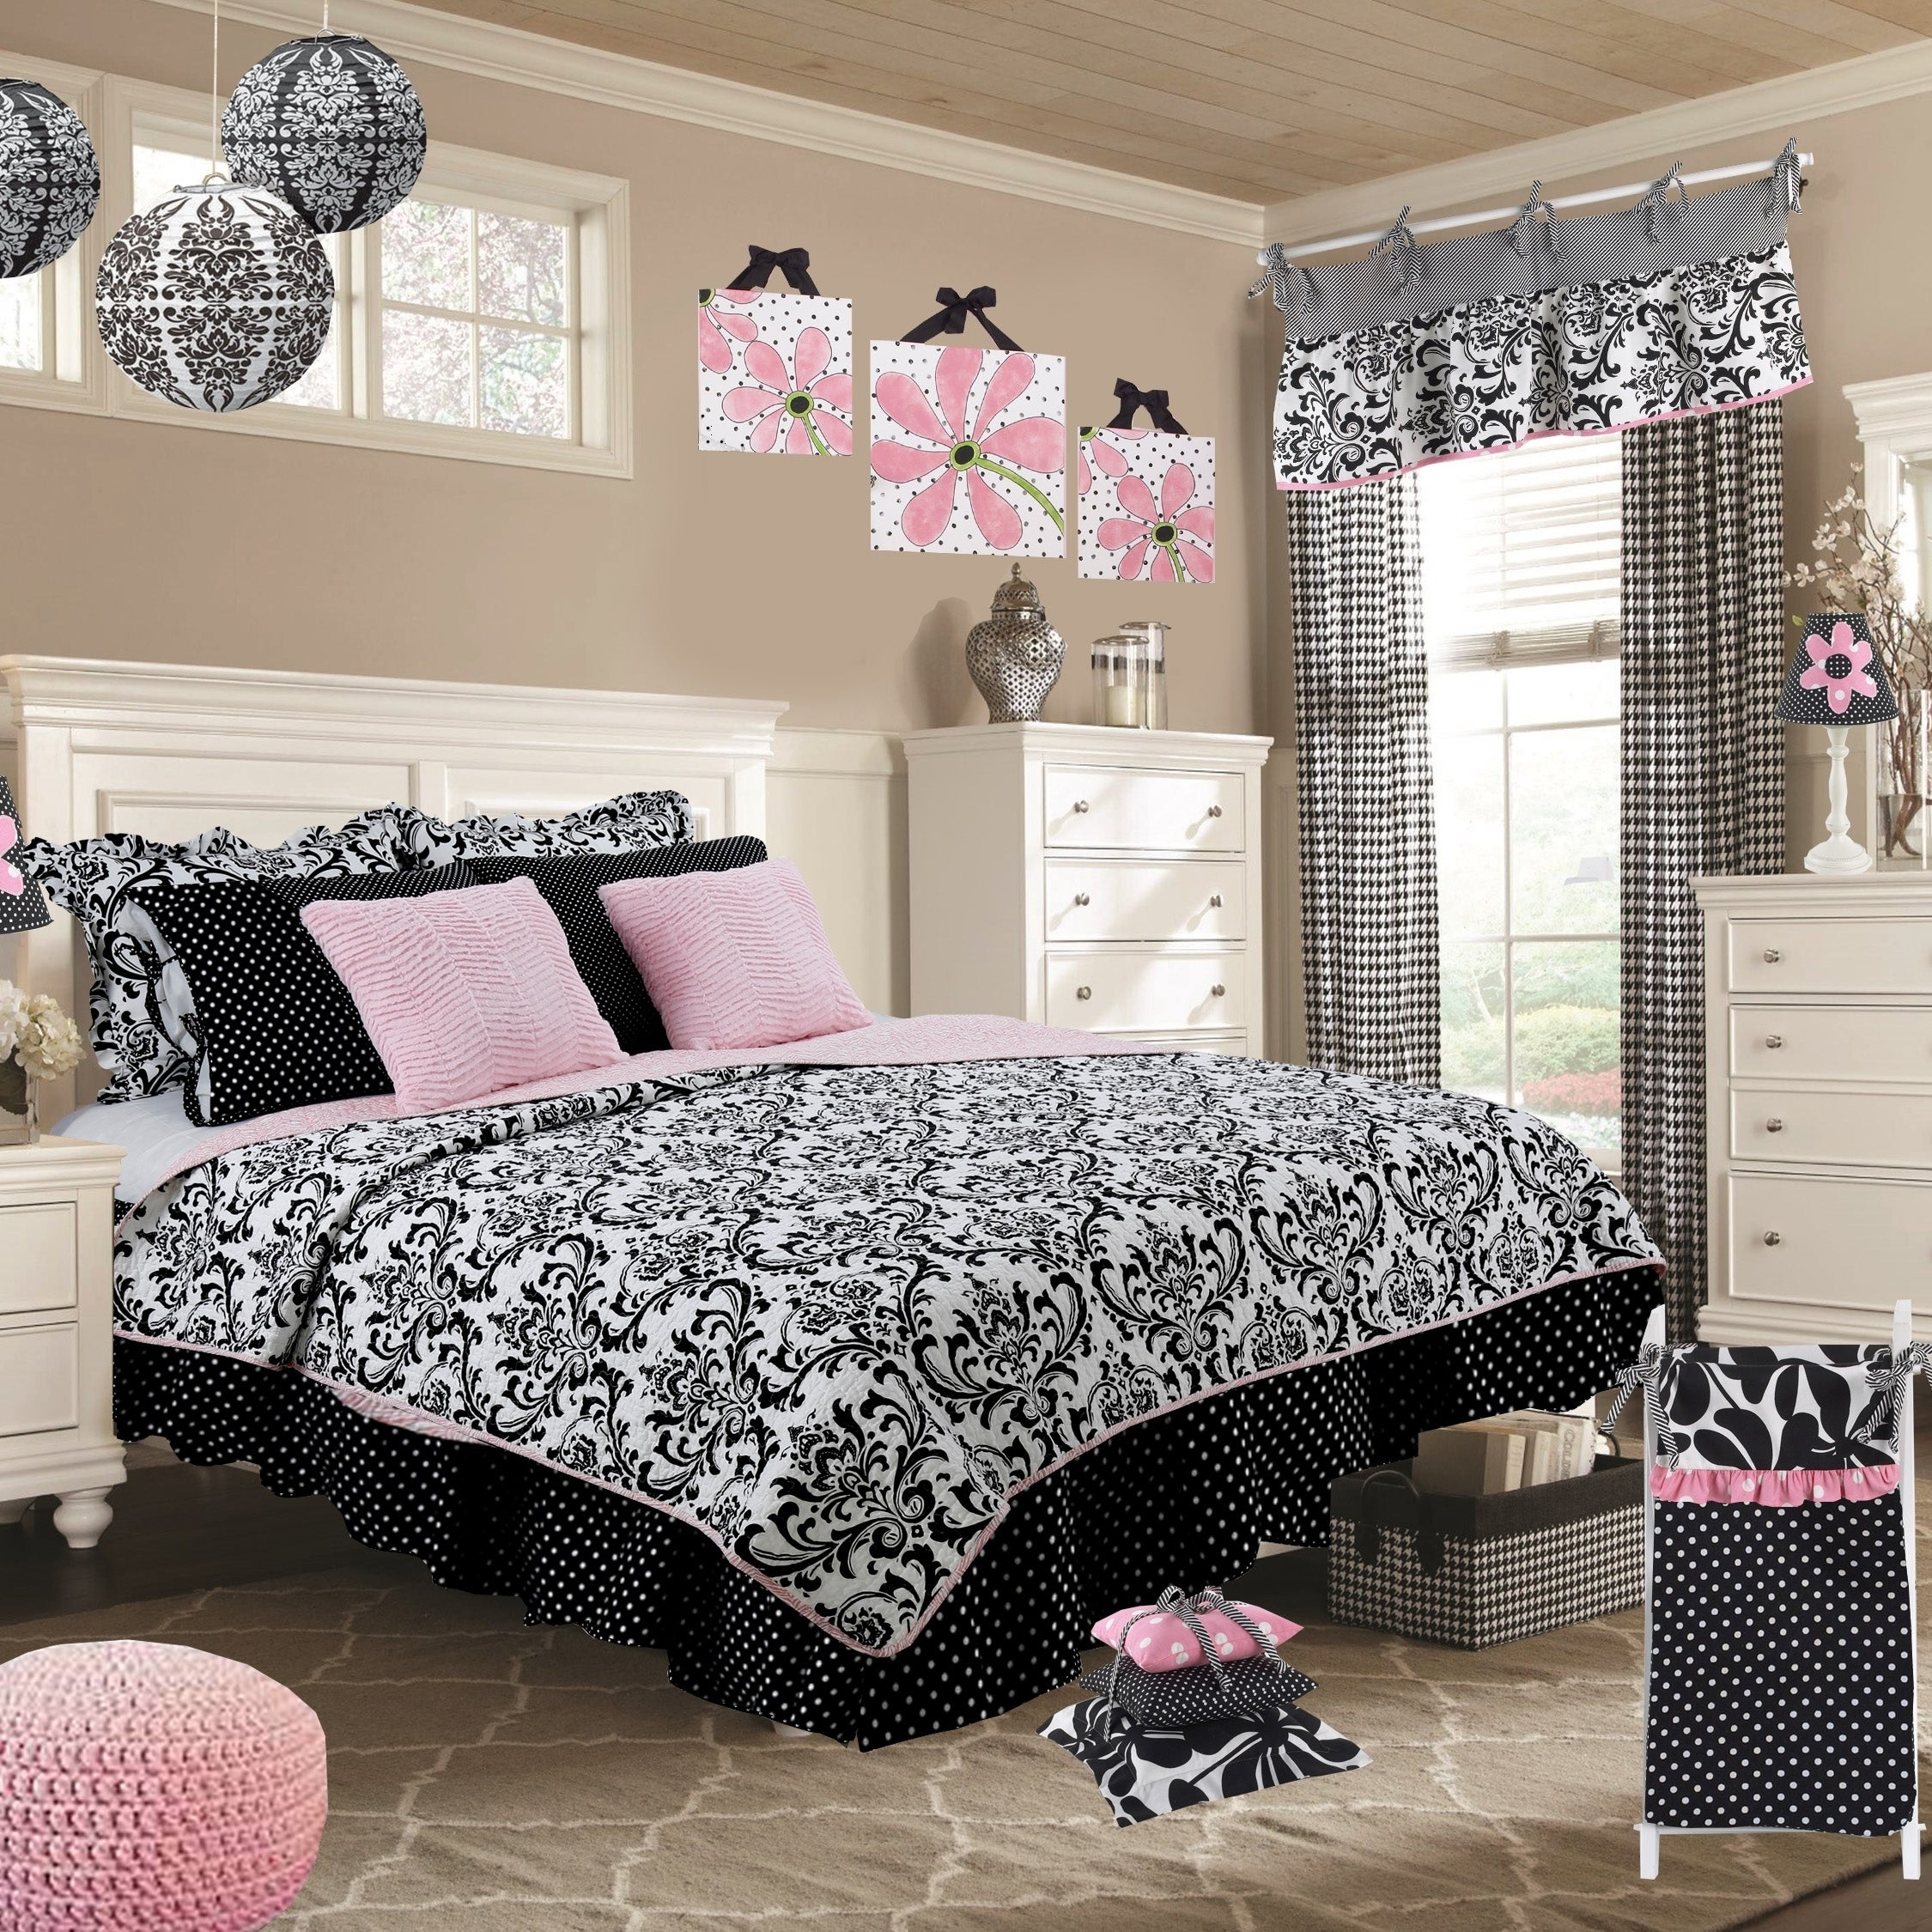 Cotton Tale Girly Black And White Damask Reversible 2 Piece Twin Quilt Bedding Set Overstock 19875541